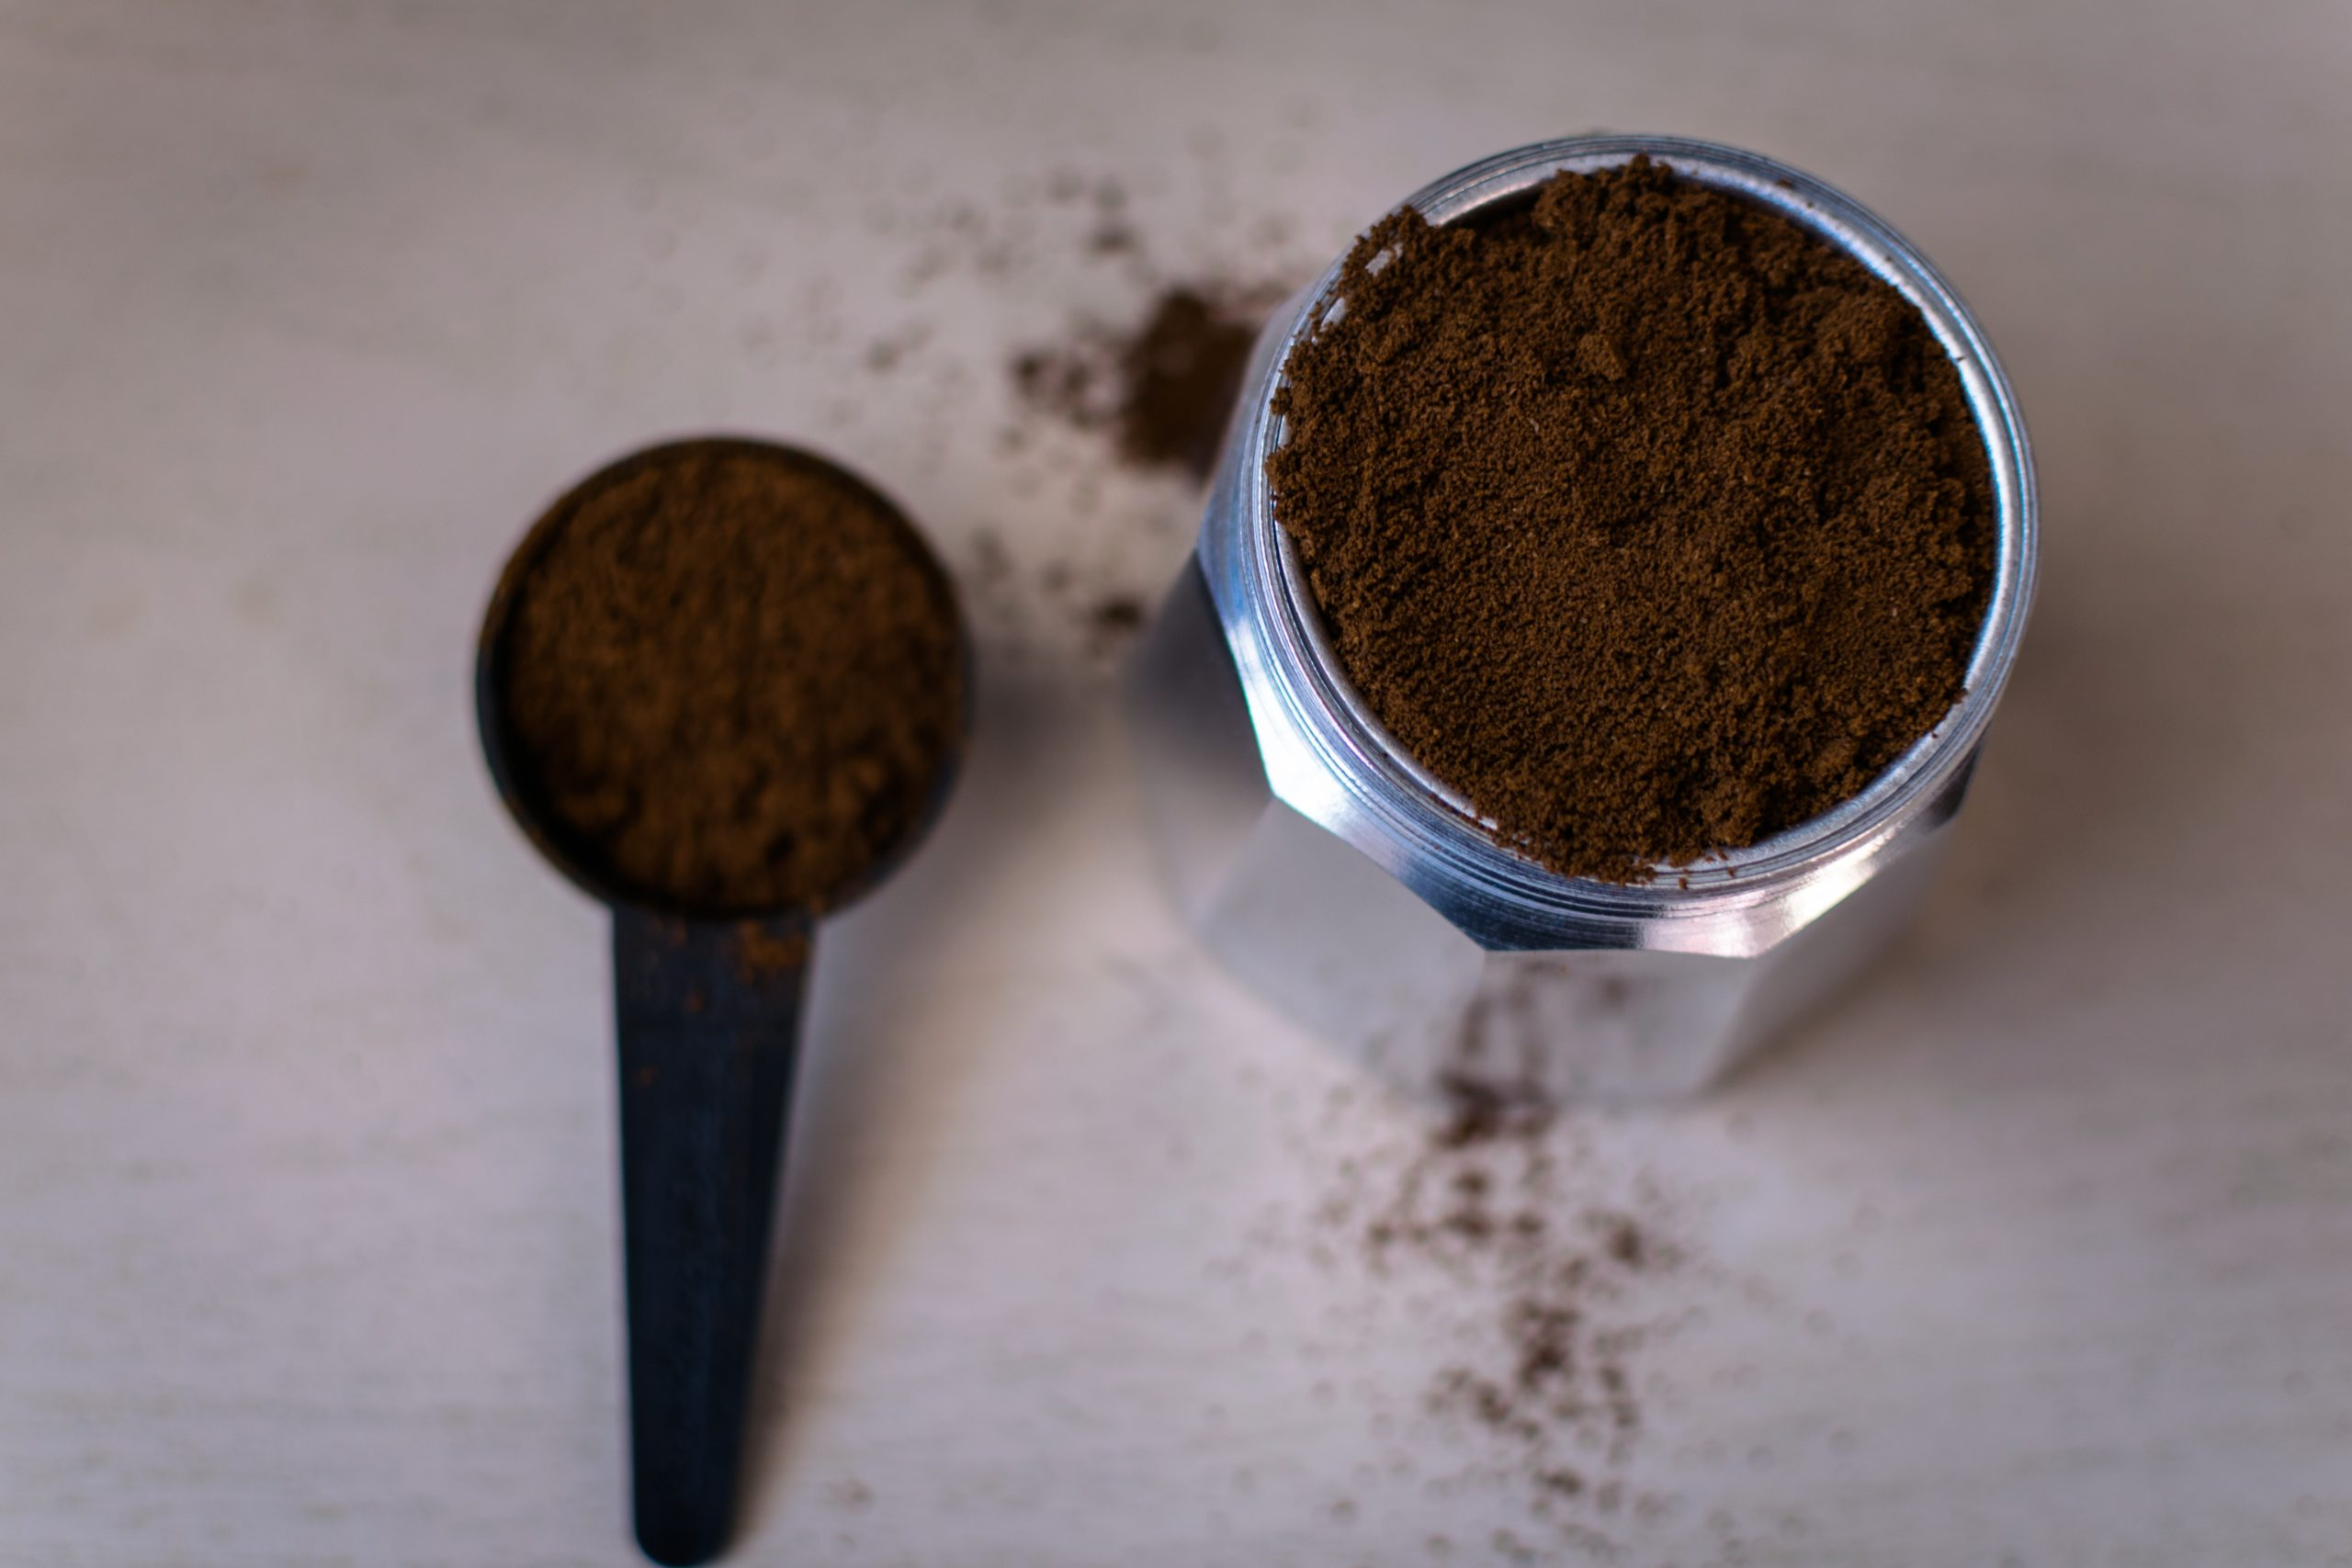 a scoop of coffee grounds and a jar of coffee grounds